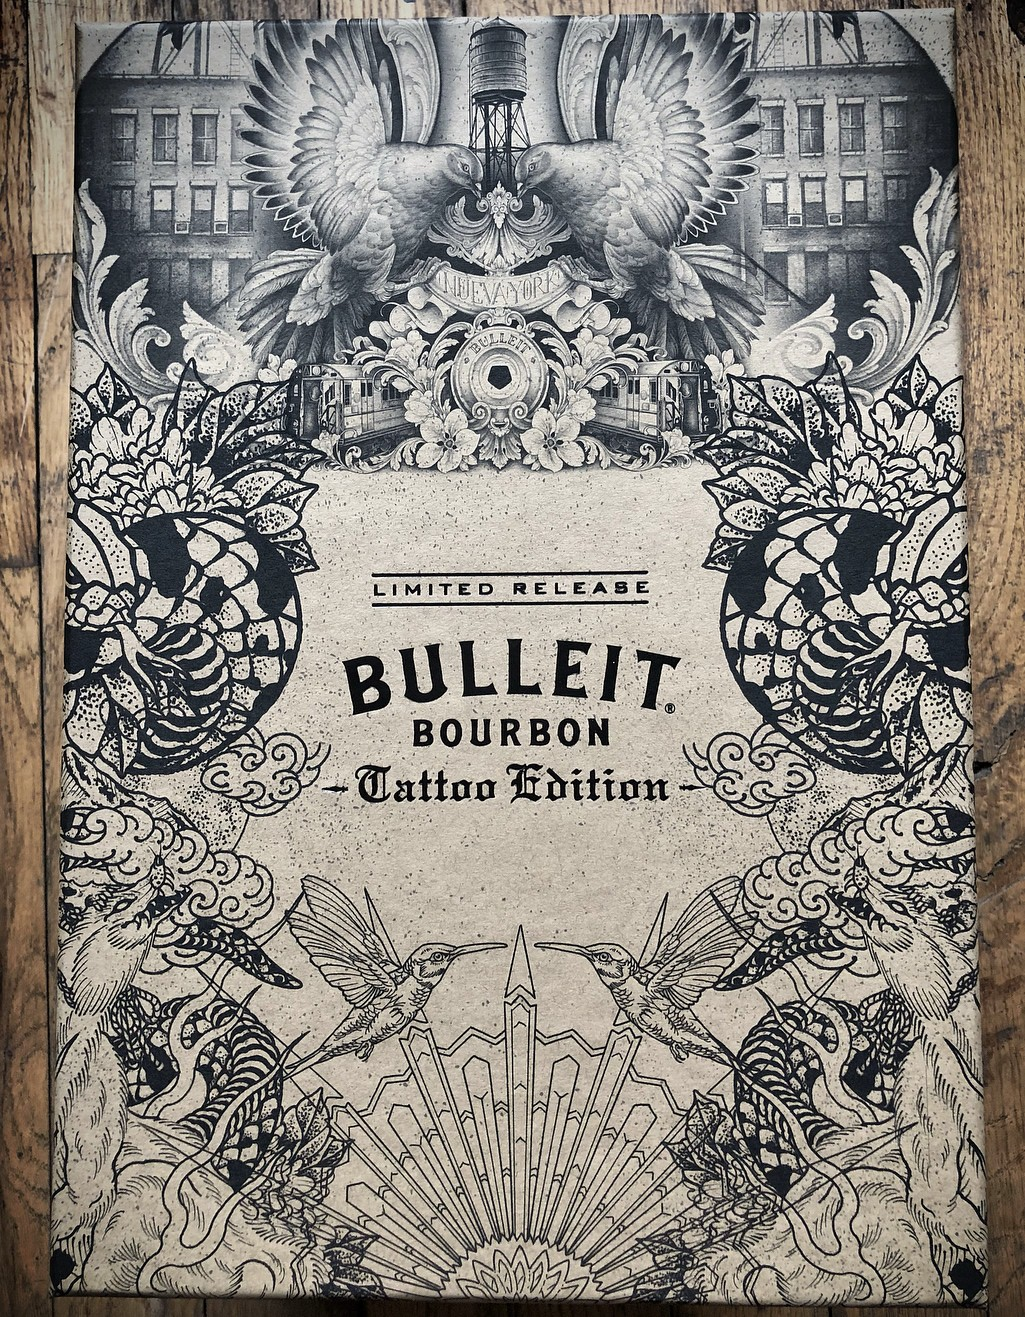 bulleit, whiskey, bourbon, bottle design, marketing, target audience, tattoo style products, alcohol